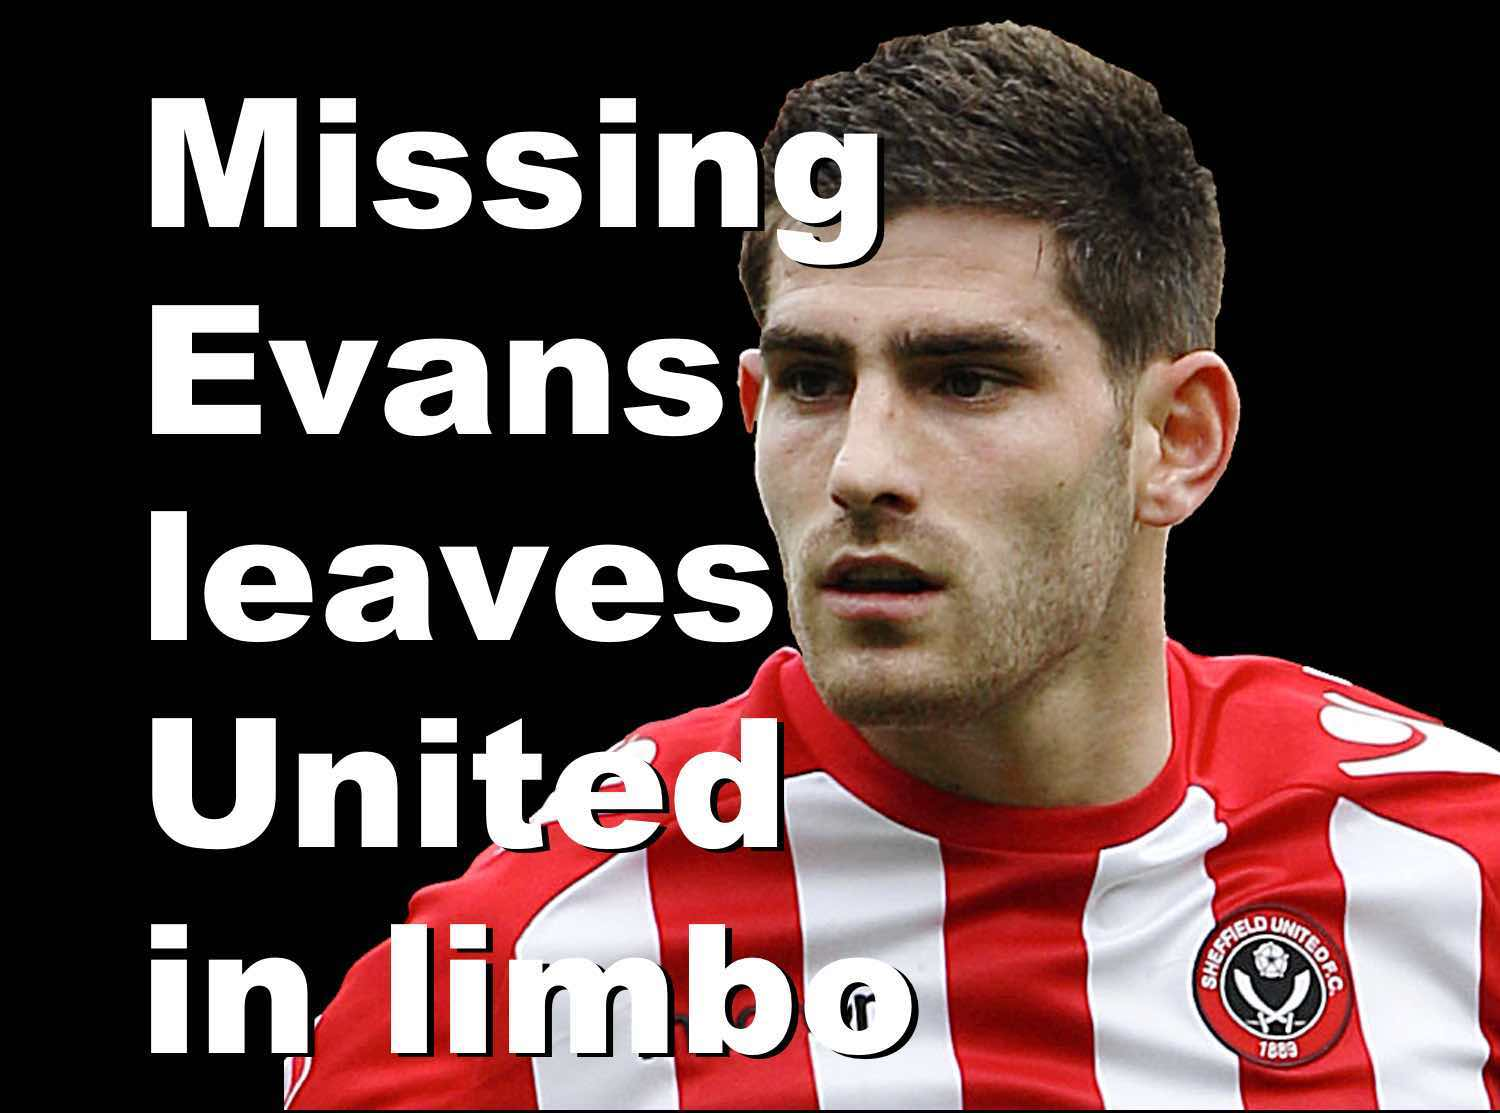 Evans leaves Blades in limbo display.jpg